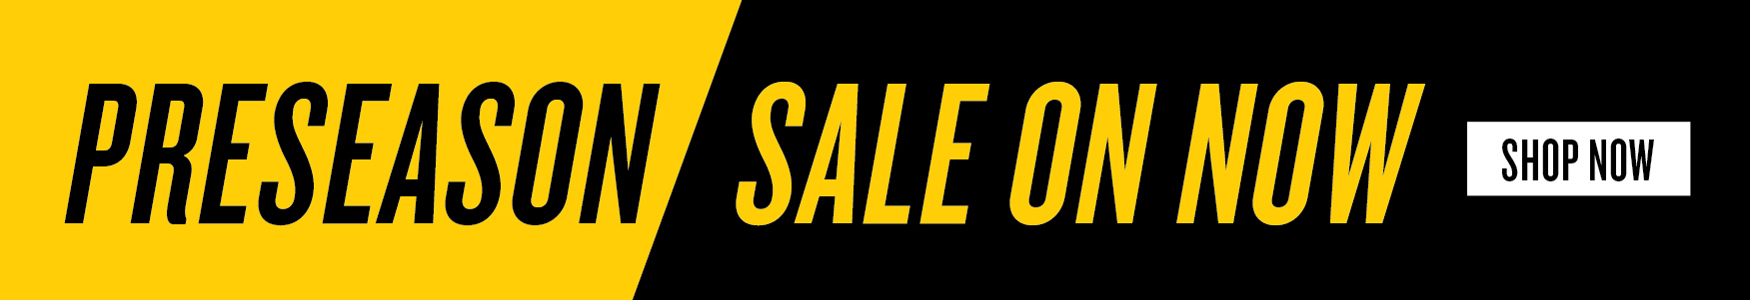 Preseason Sale on Now!